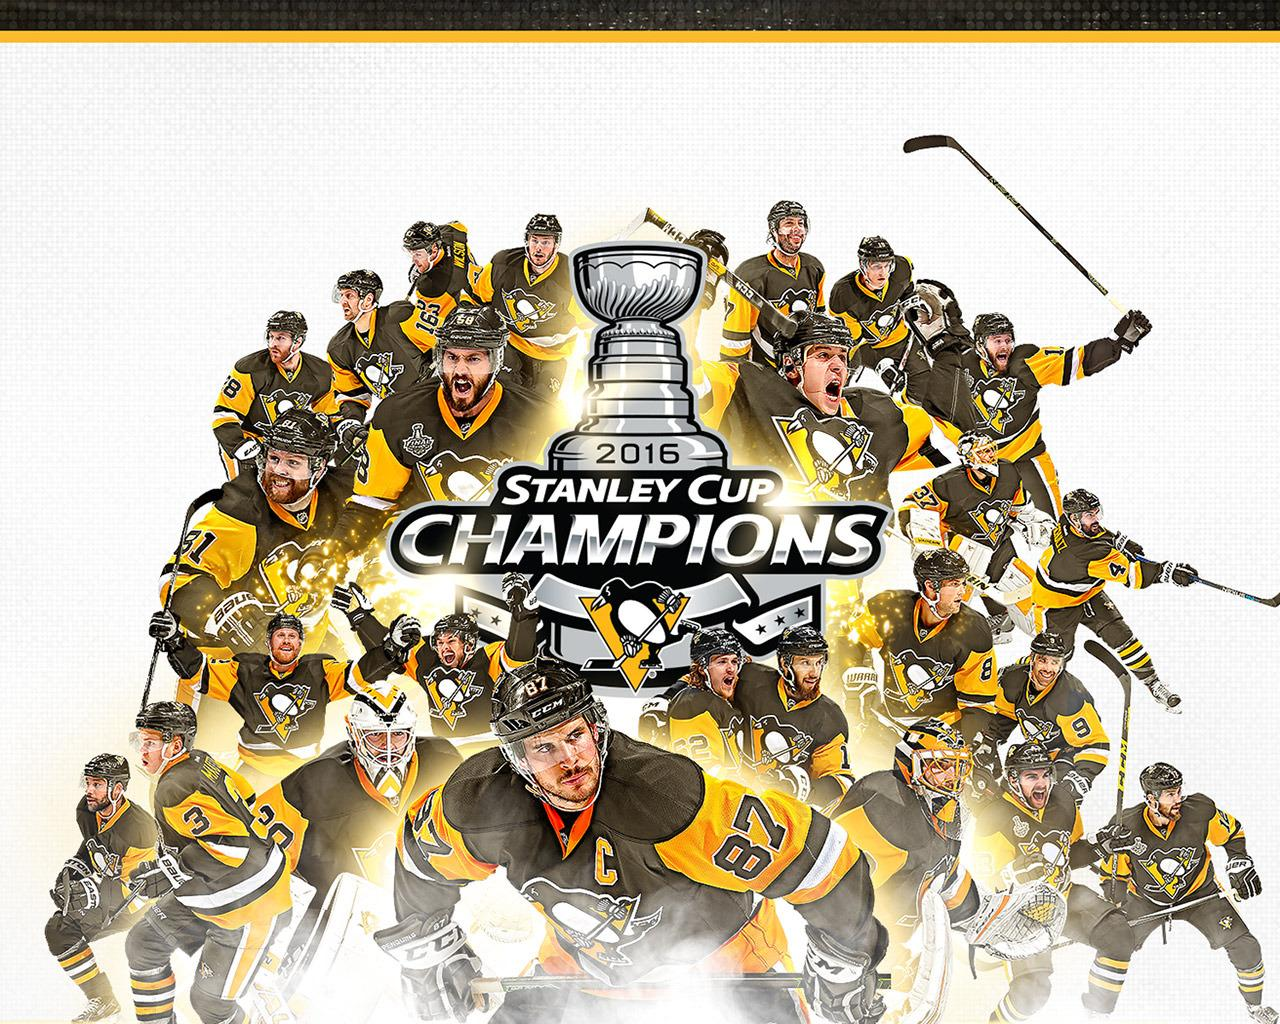 Pittsburgh Penguins Computer Wallpapers - Wallpaper Cave